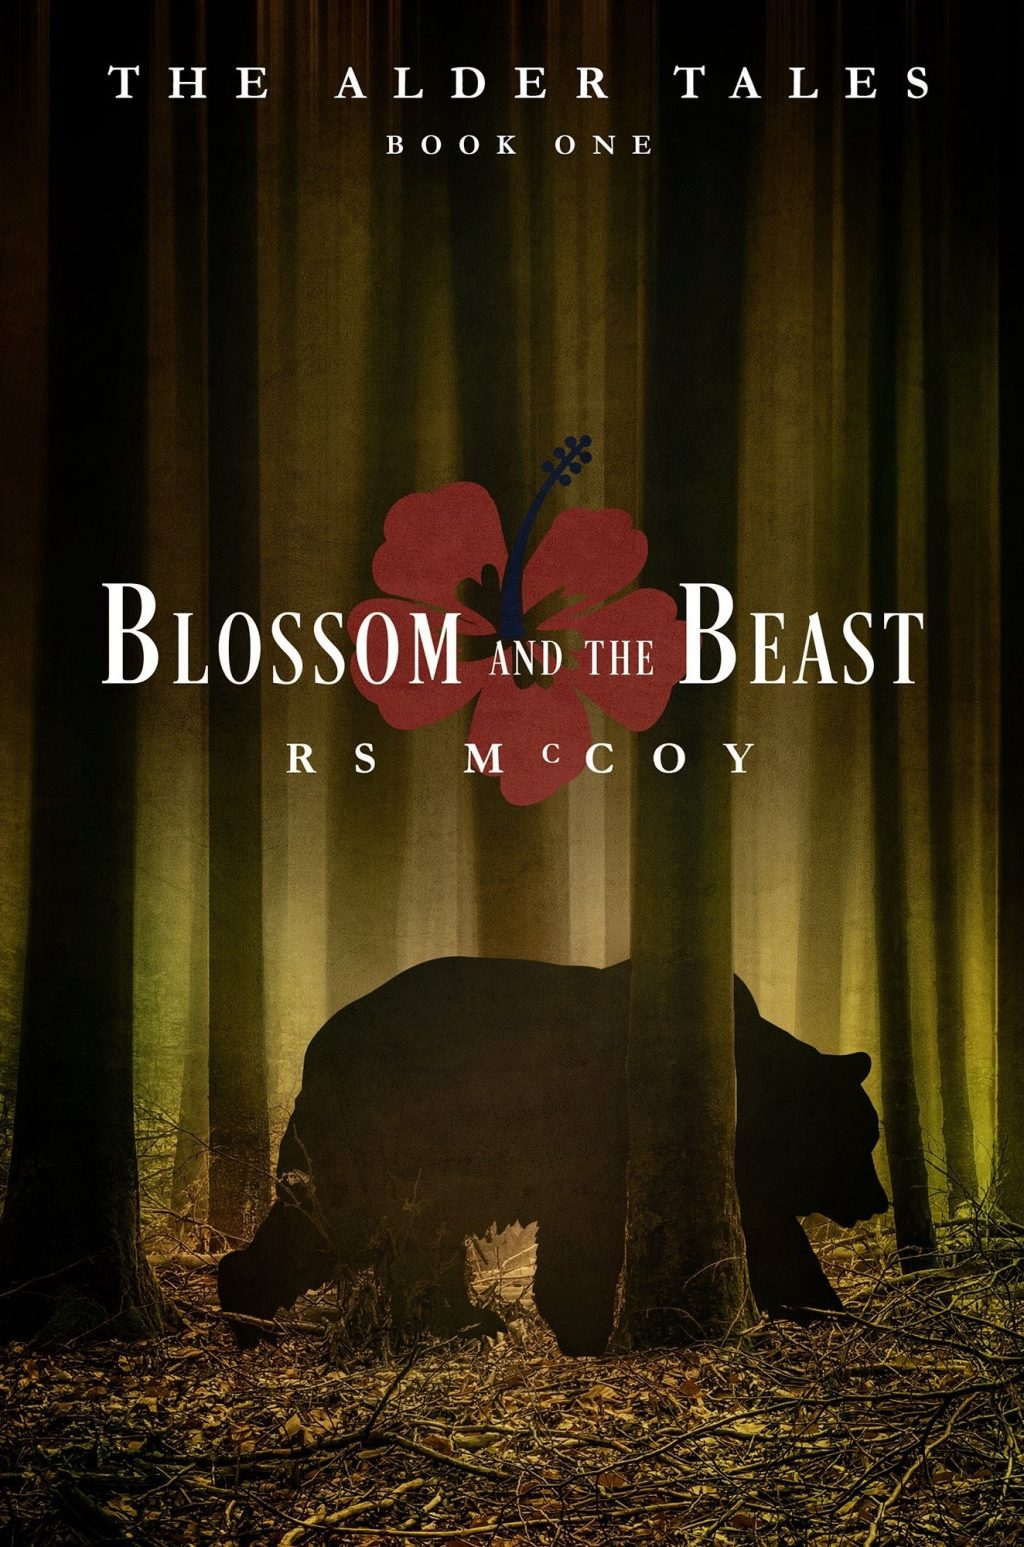 Blossom and the Beast (The Alder Tales #1) by R.S. McCoy